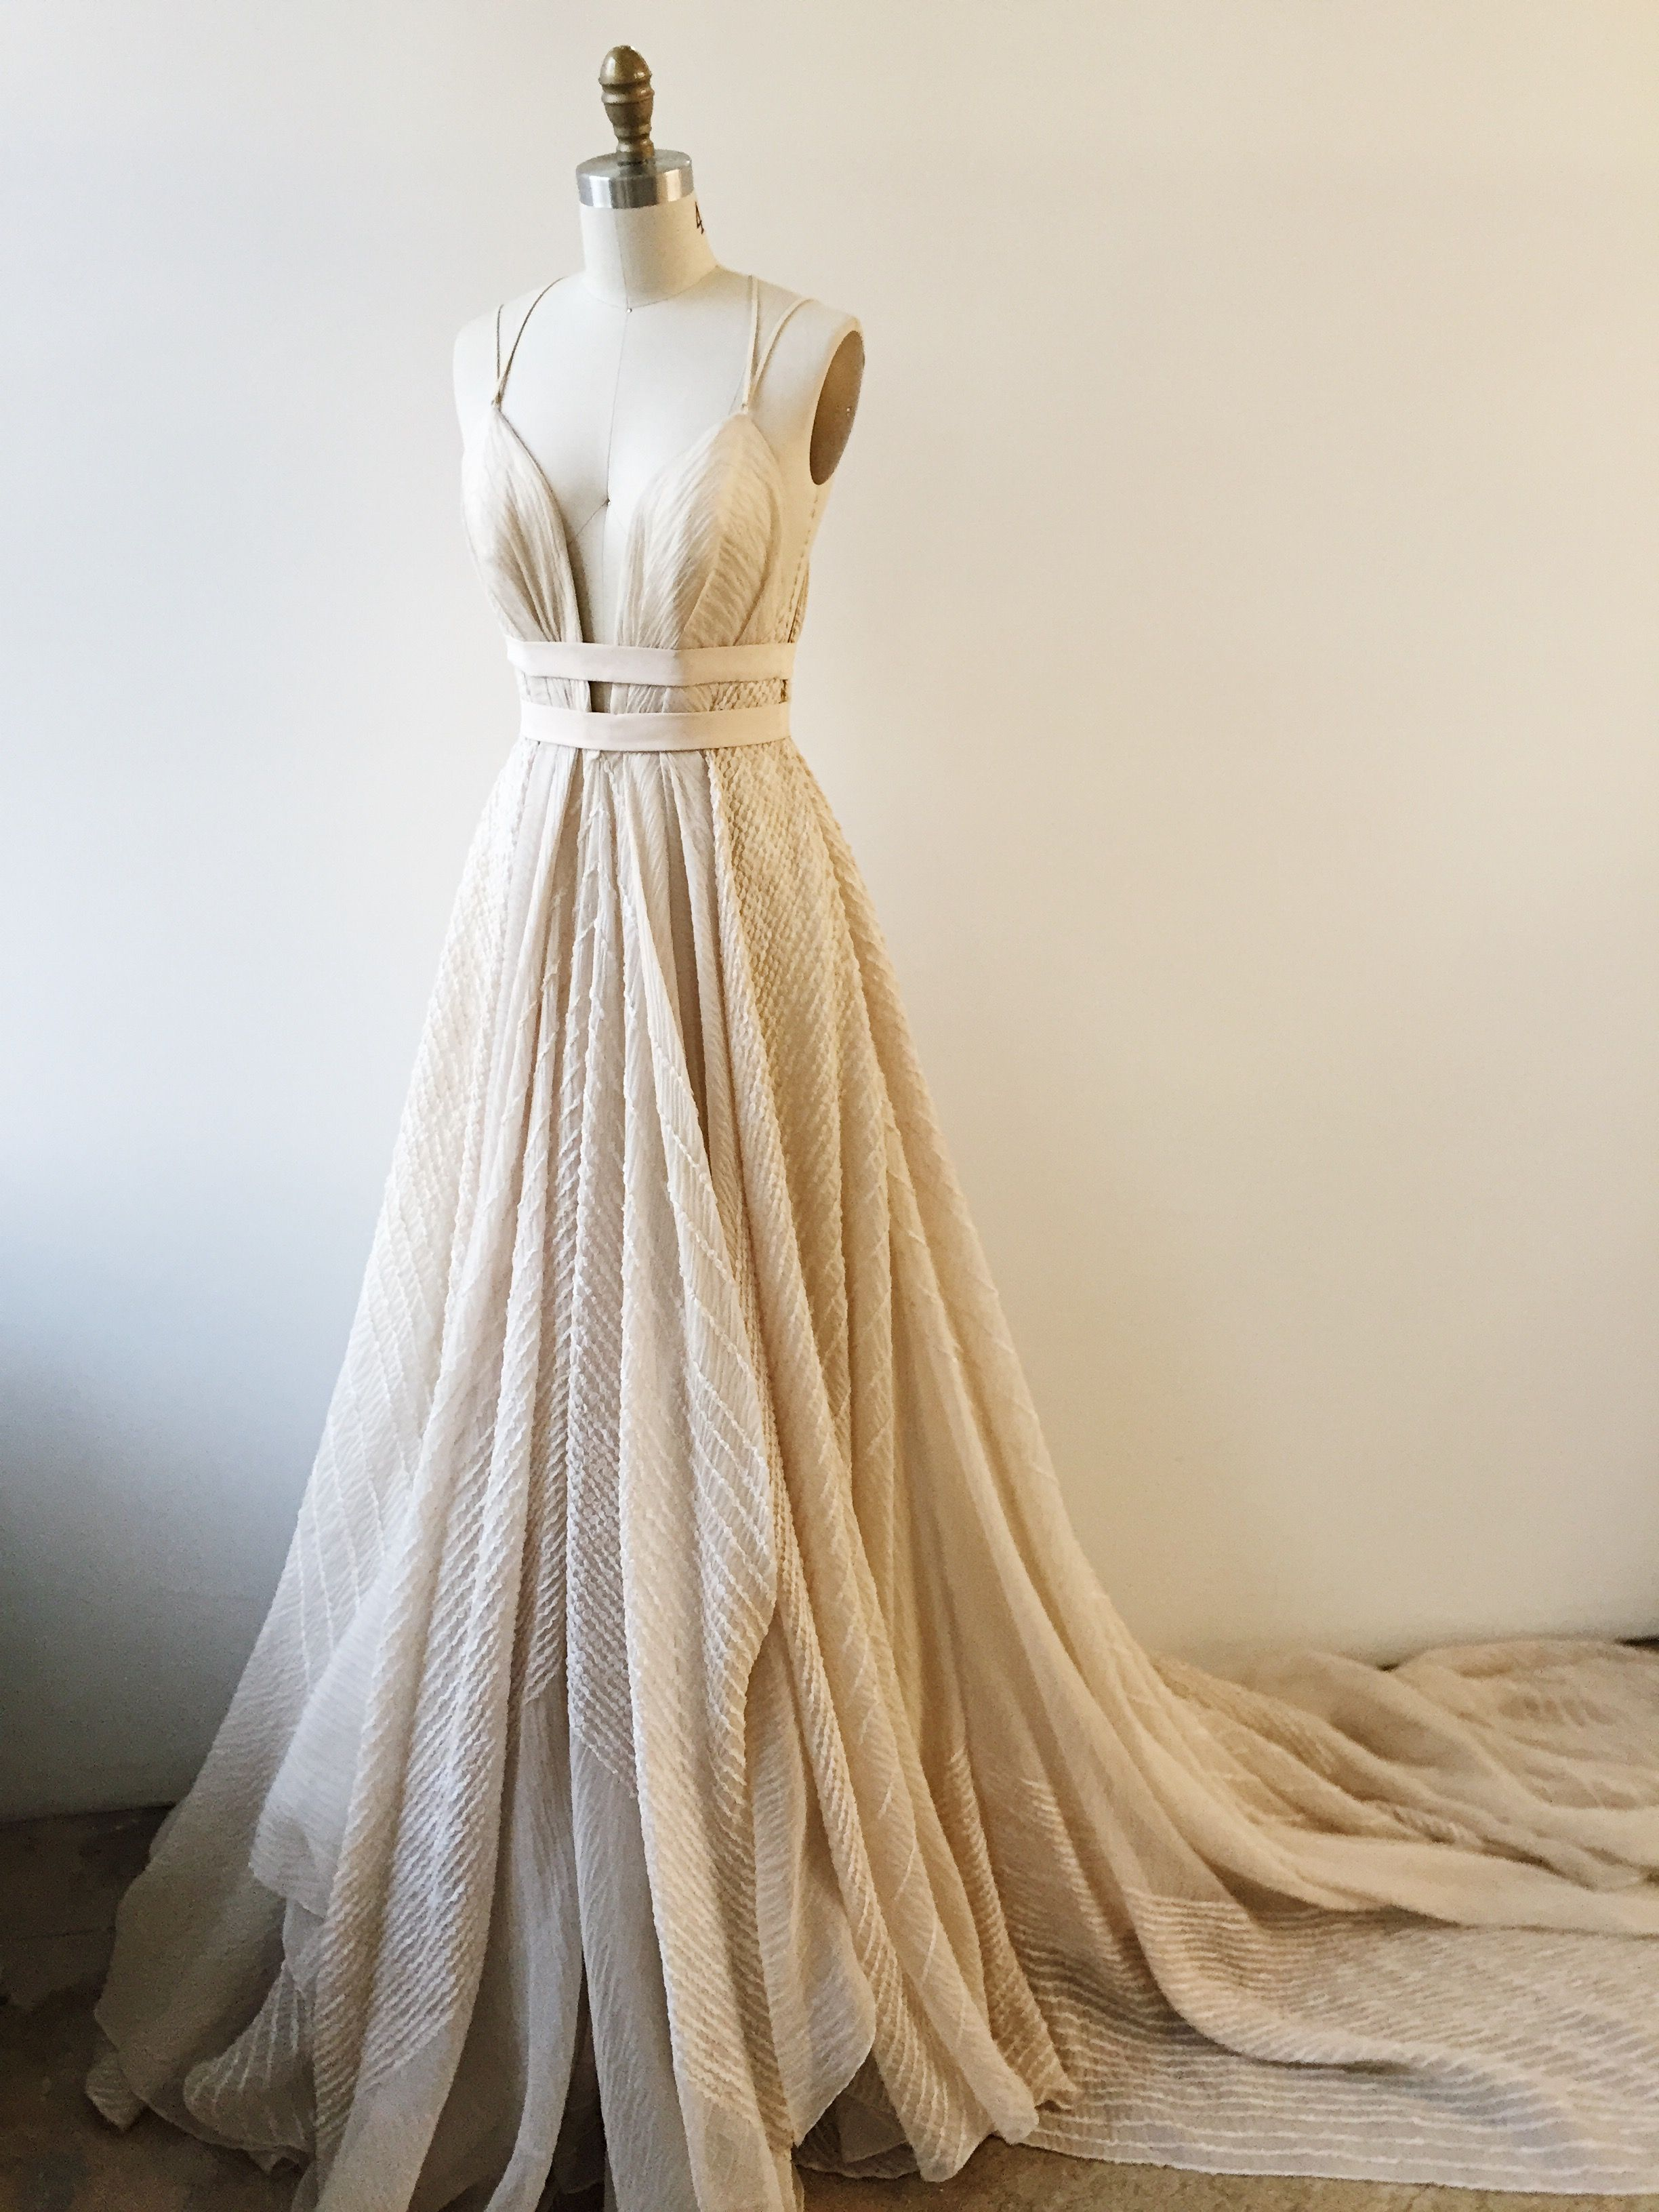 viking wedding dress Linearly banded constrained ballgown with leather macrame strapping Real weddings inspiration shoots Request more information Coralia wedding dress